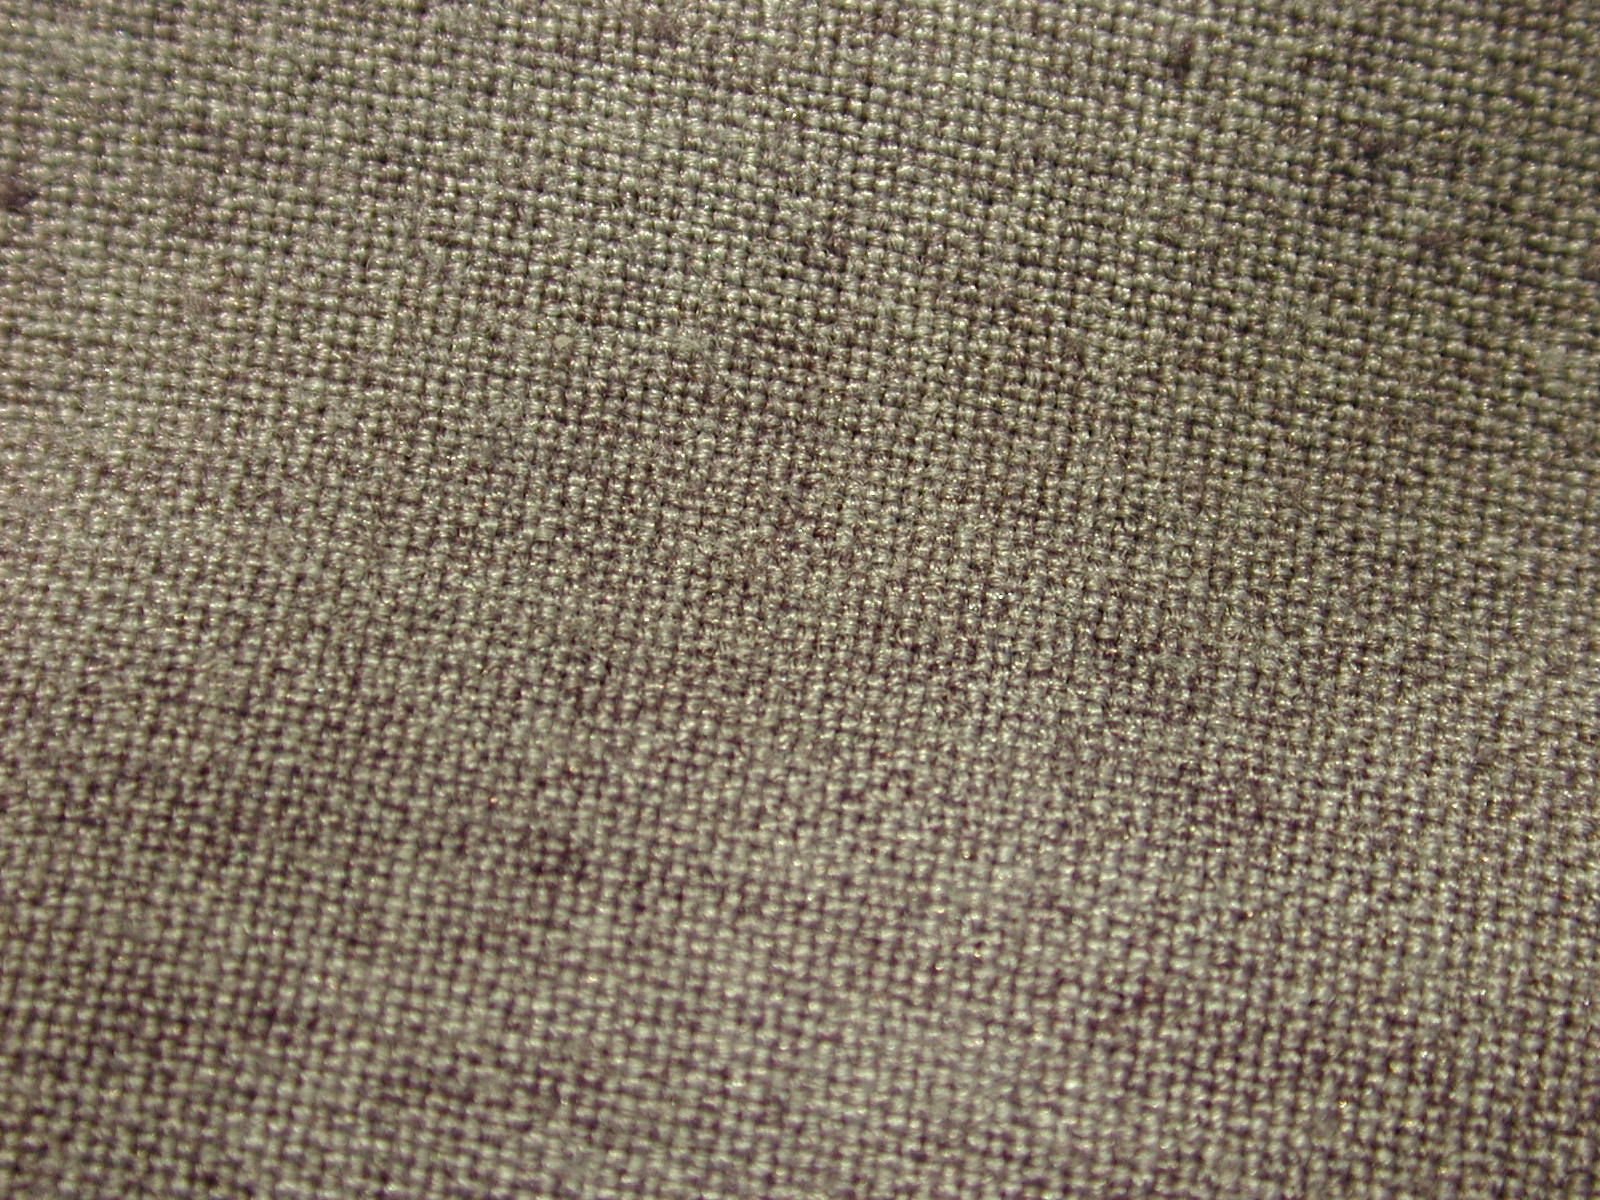 Patterns Cloth Fabric Texture